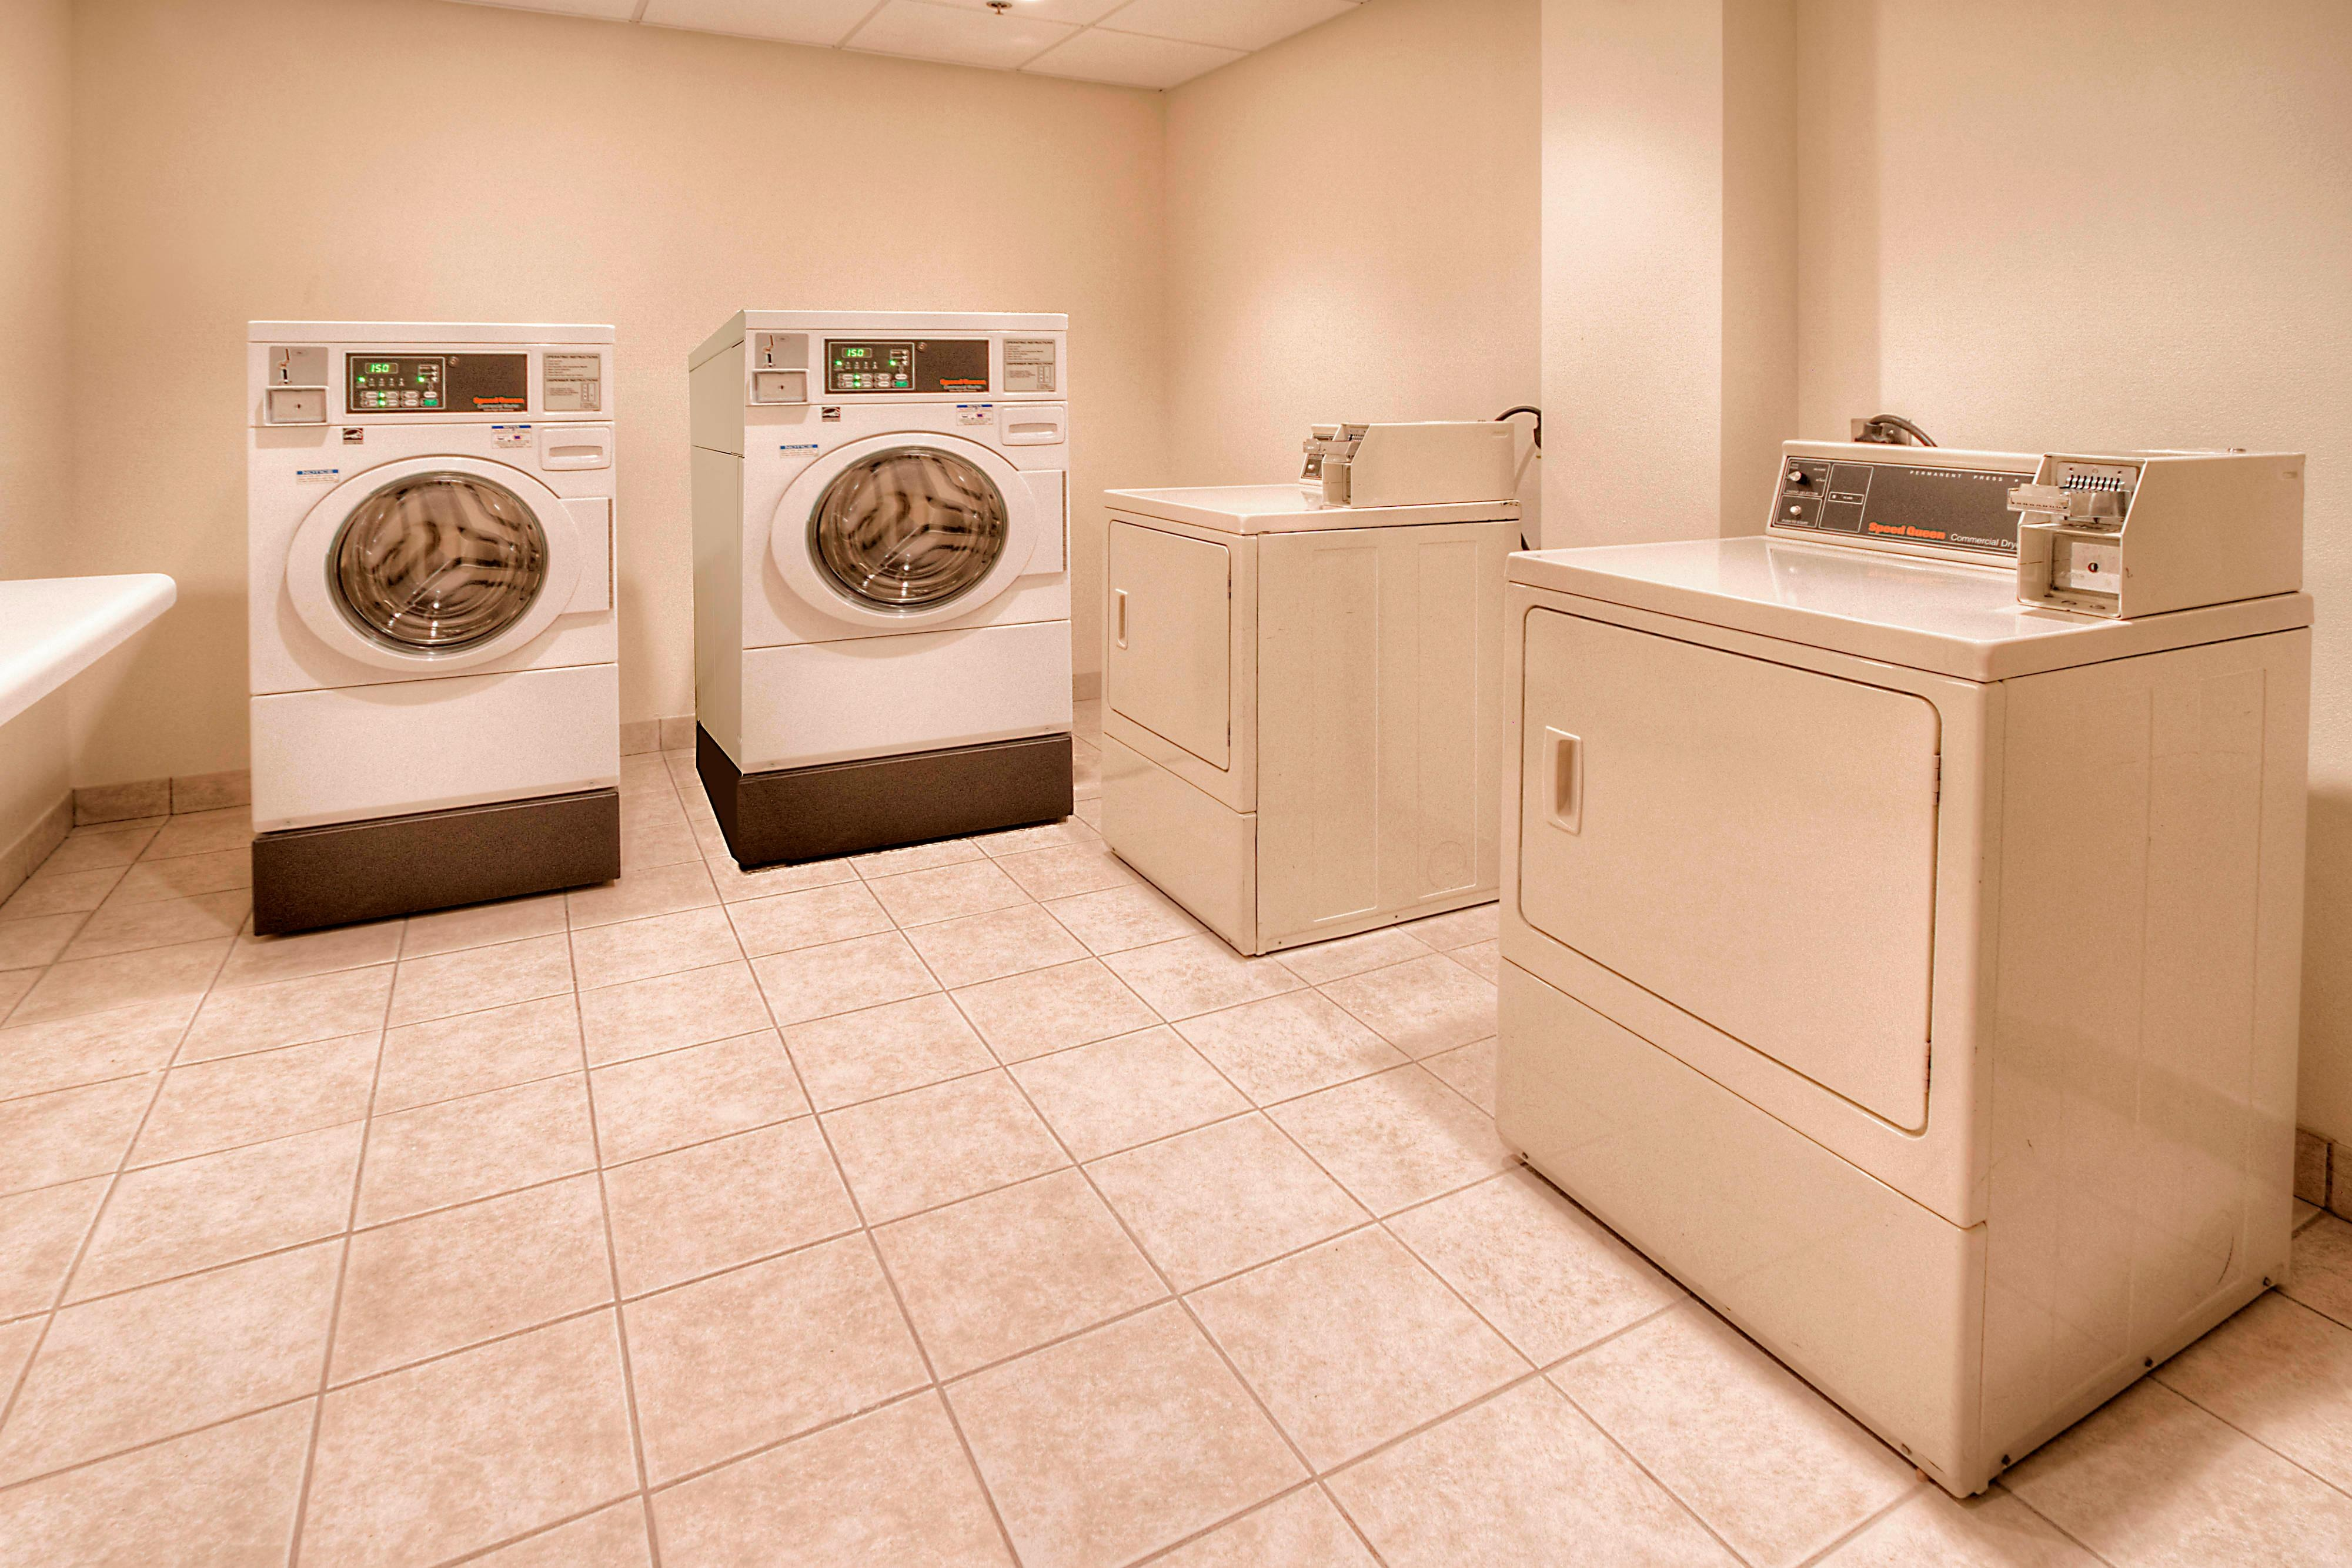 Fairfield Inn & Suites Destin Guest Laundry